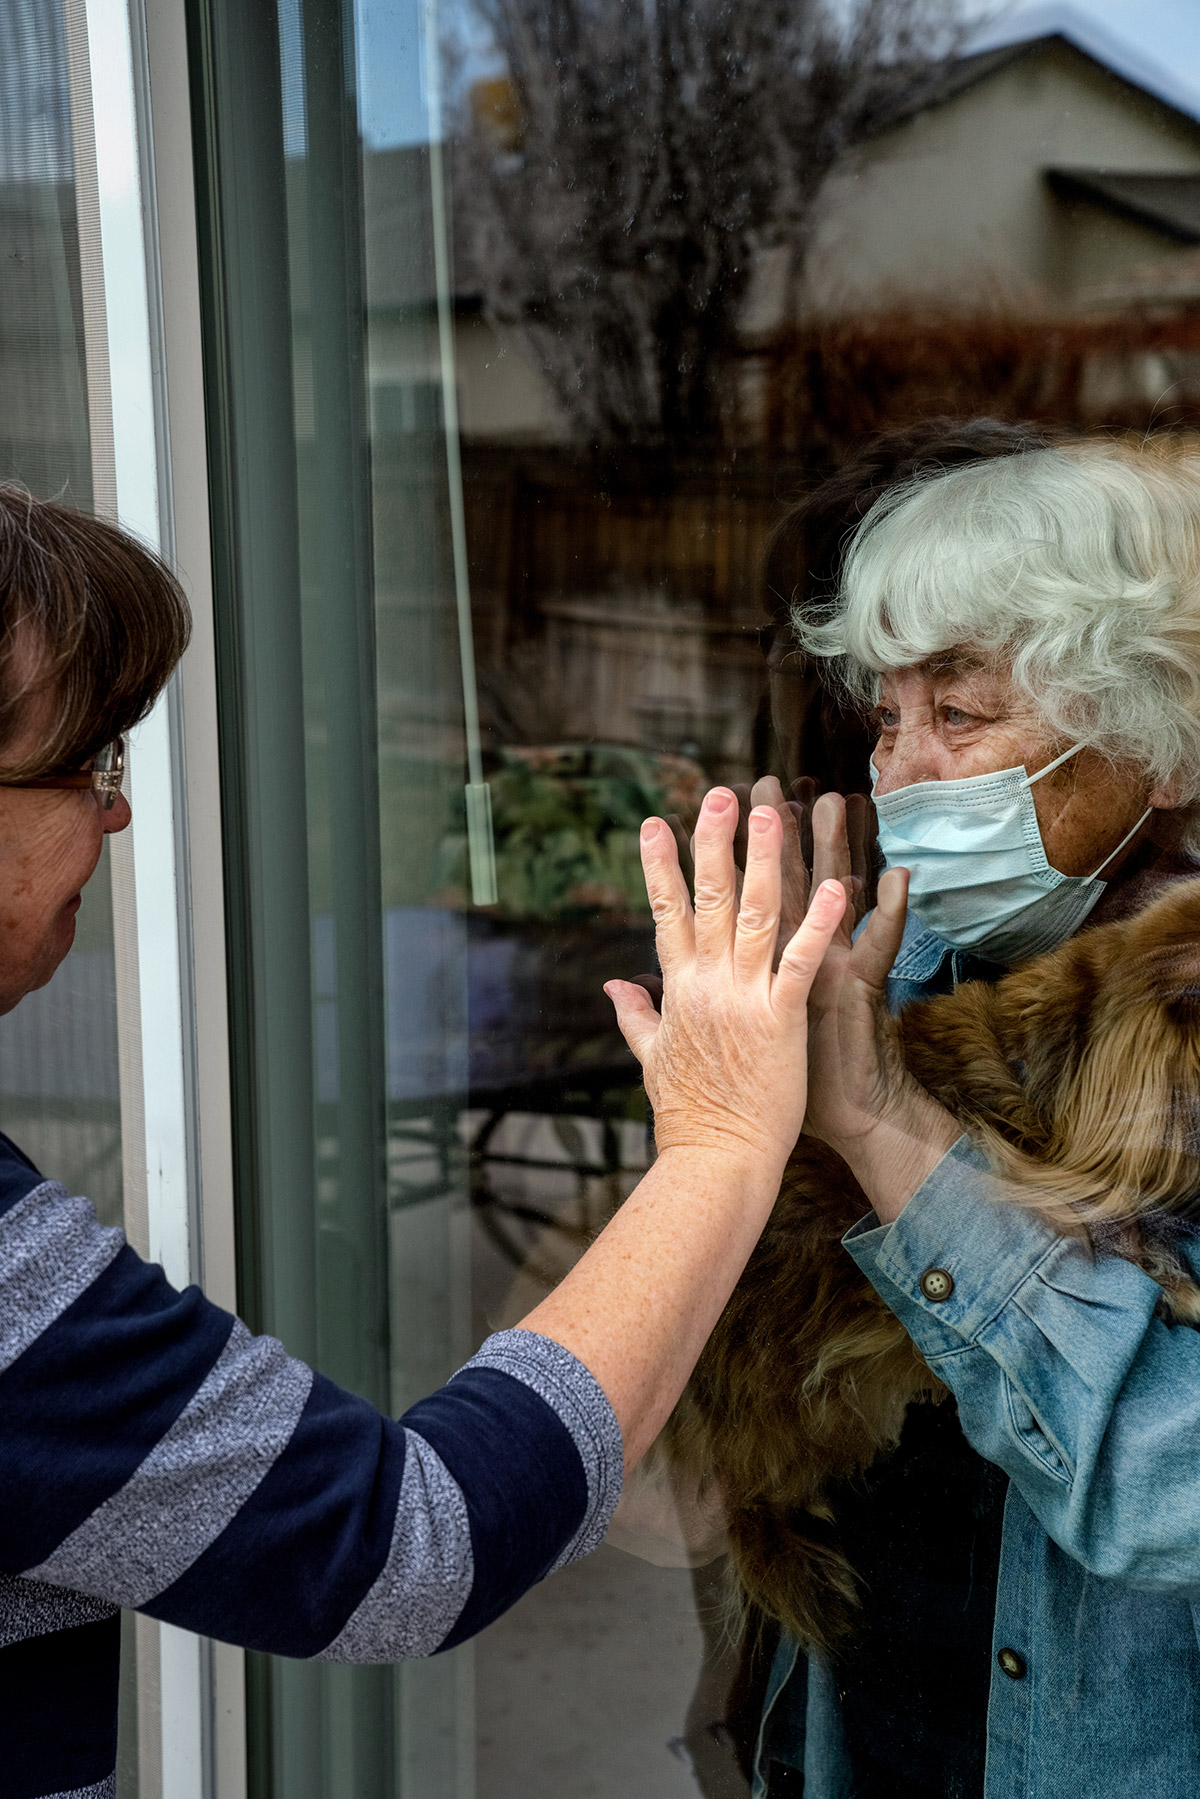 Woman touches hands with an elderly woman through a glass window